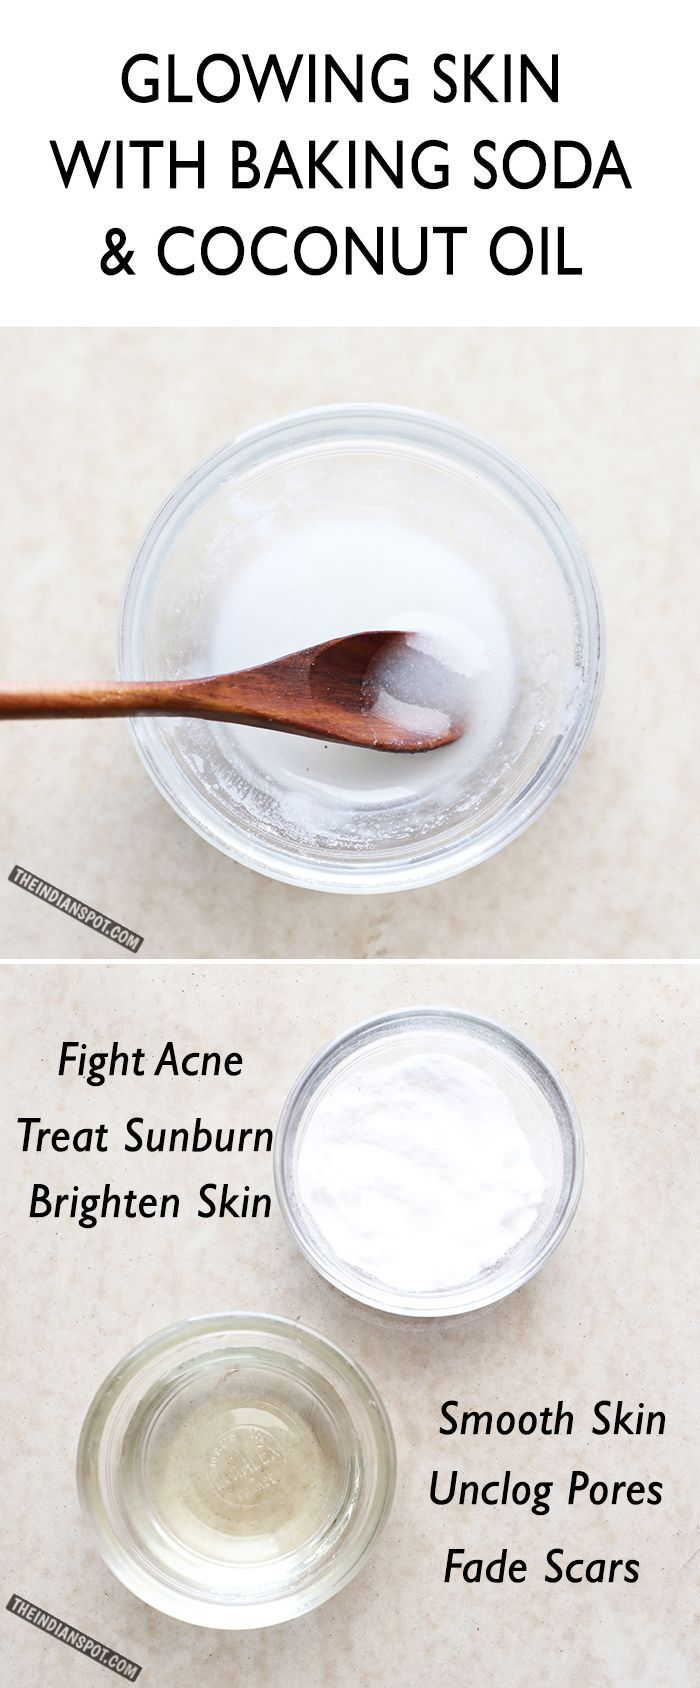 DIY face/body scrub along with its benefits: RECIPE: ½ cup coconut oil 2/3 cup baking soda 5 drops essential oils ( optional ) Method- Take coconut oil in a medium sized bowl. Melt it a bit if solid. (Diy Beauty)